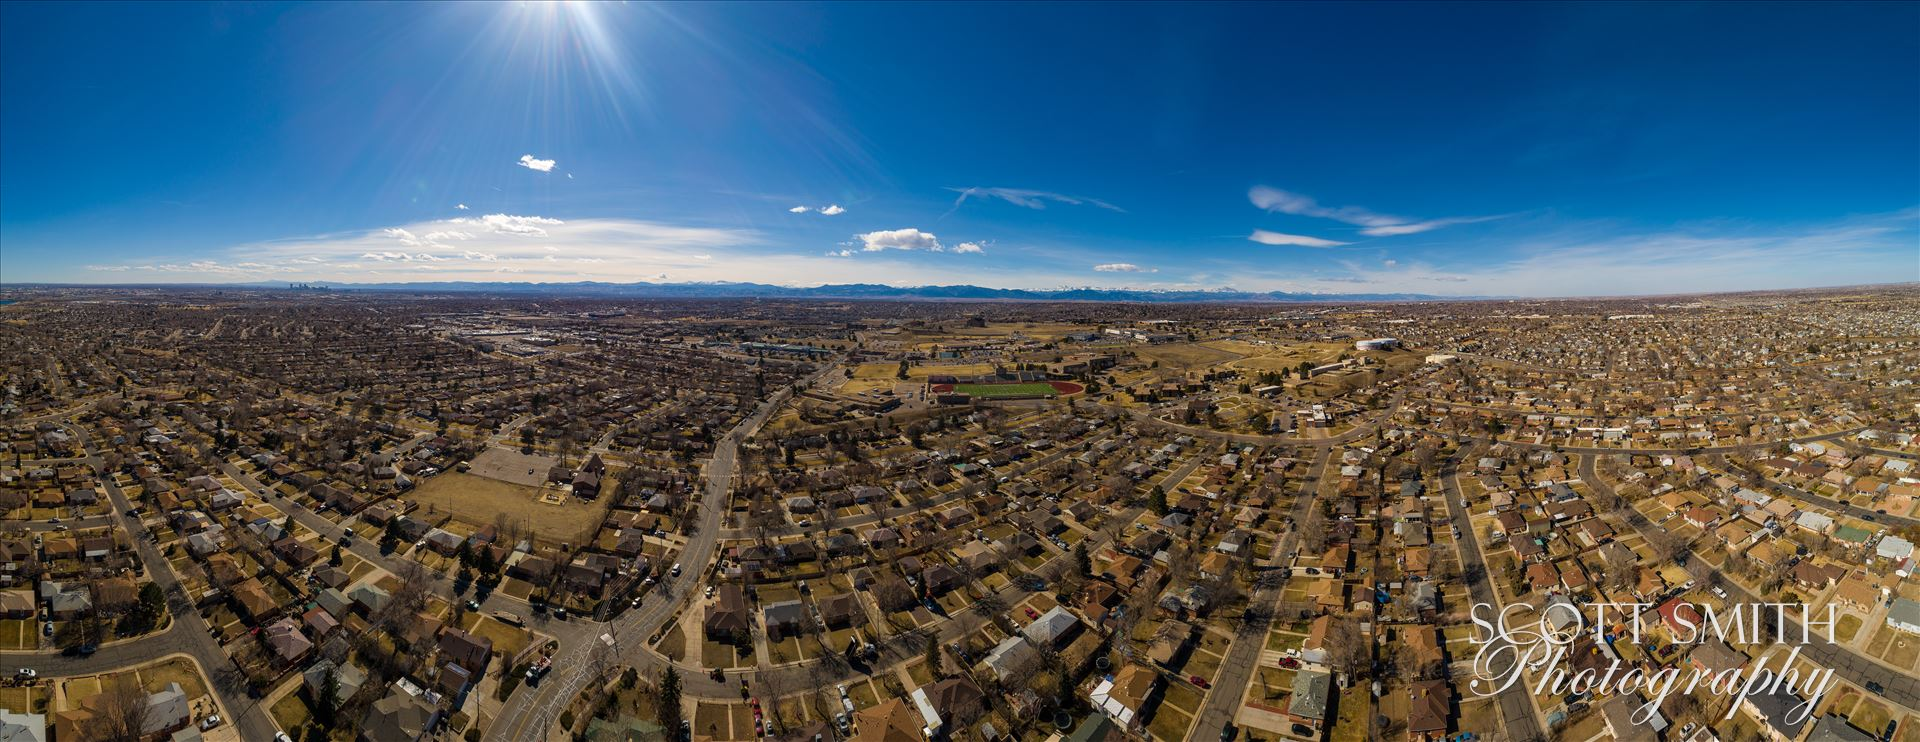 Panoramic aerial shot of Thornton, Colorado - A panoramic aerial photo of Thornton, Colorado, made up of 21 separate photos. by D Scott Smith